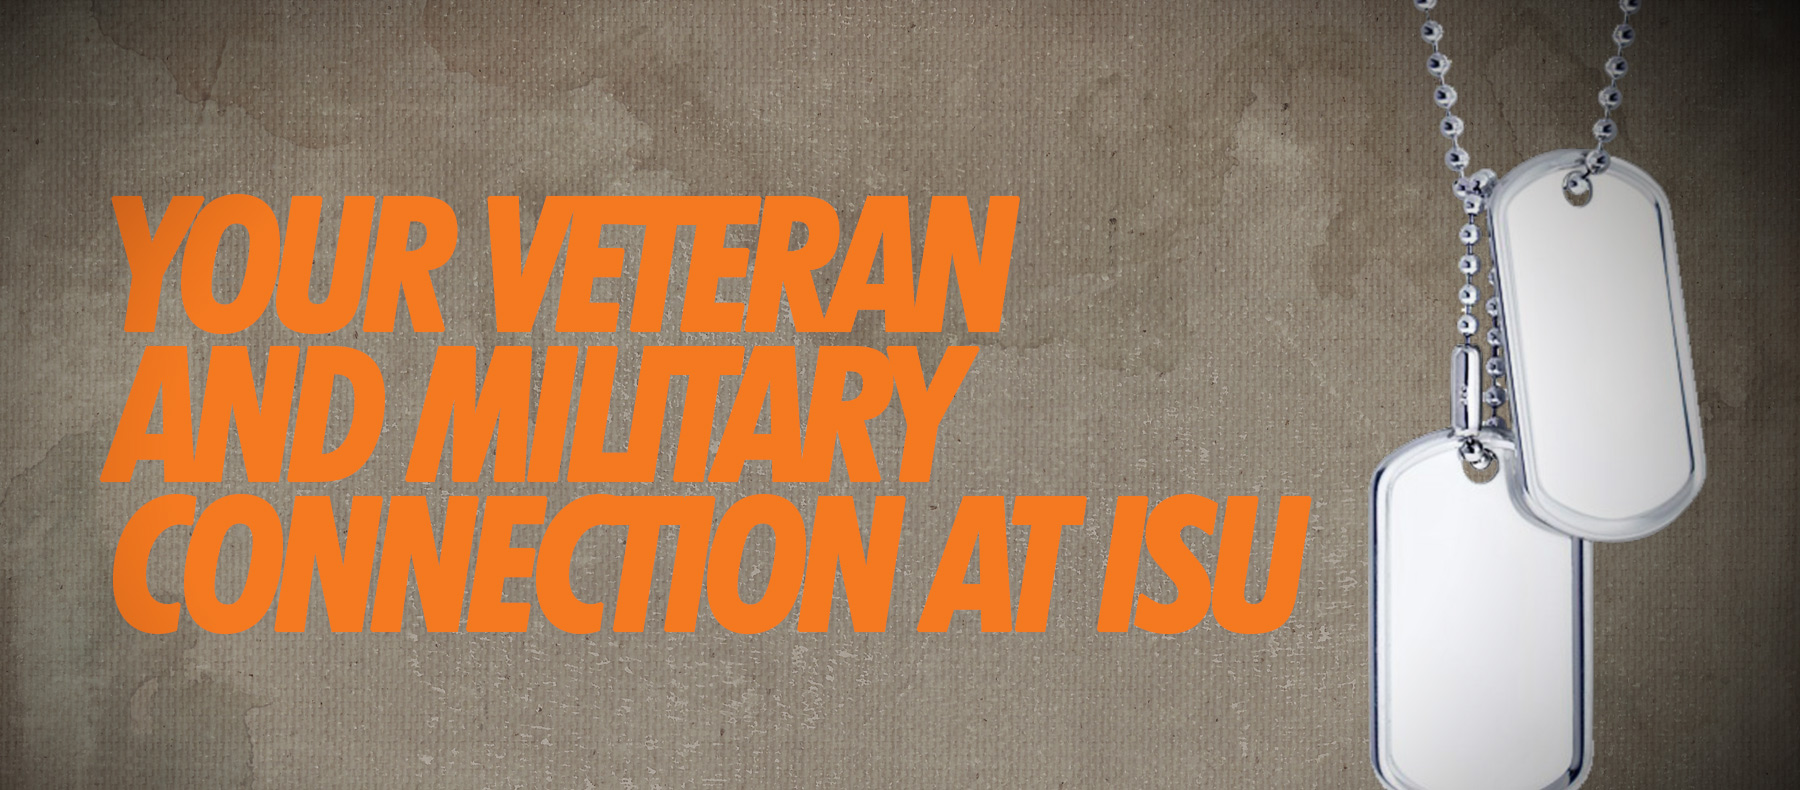 Your Veteran and Military Connection at ISU